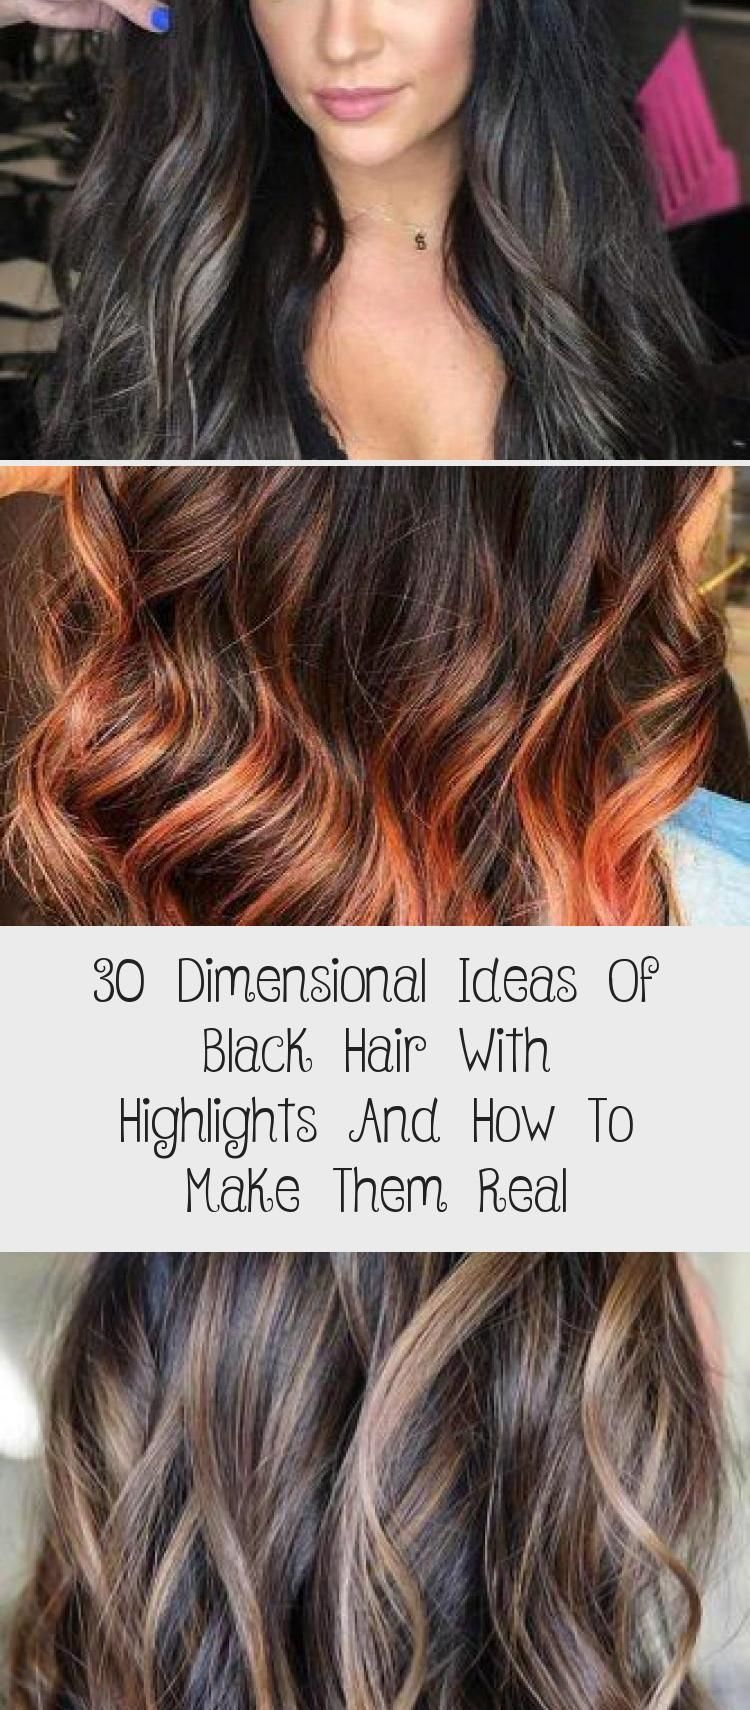 30 Dimensional Ideas Of Black Hair With Highlights And How